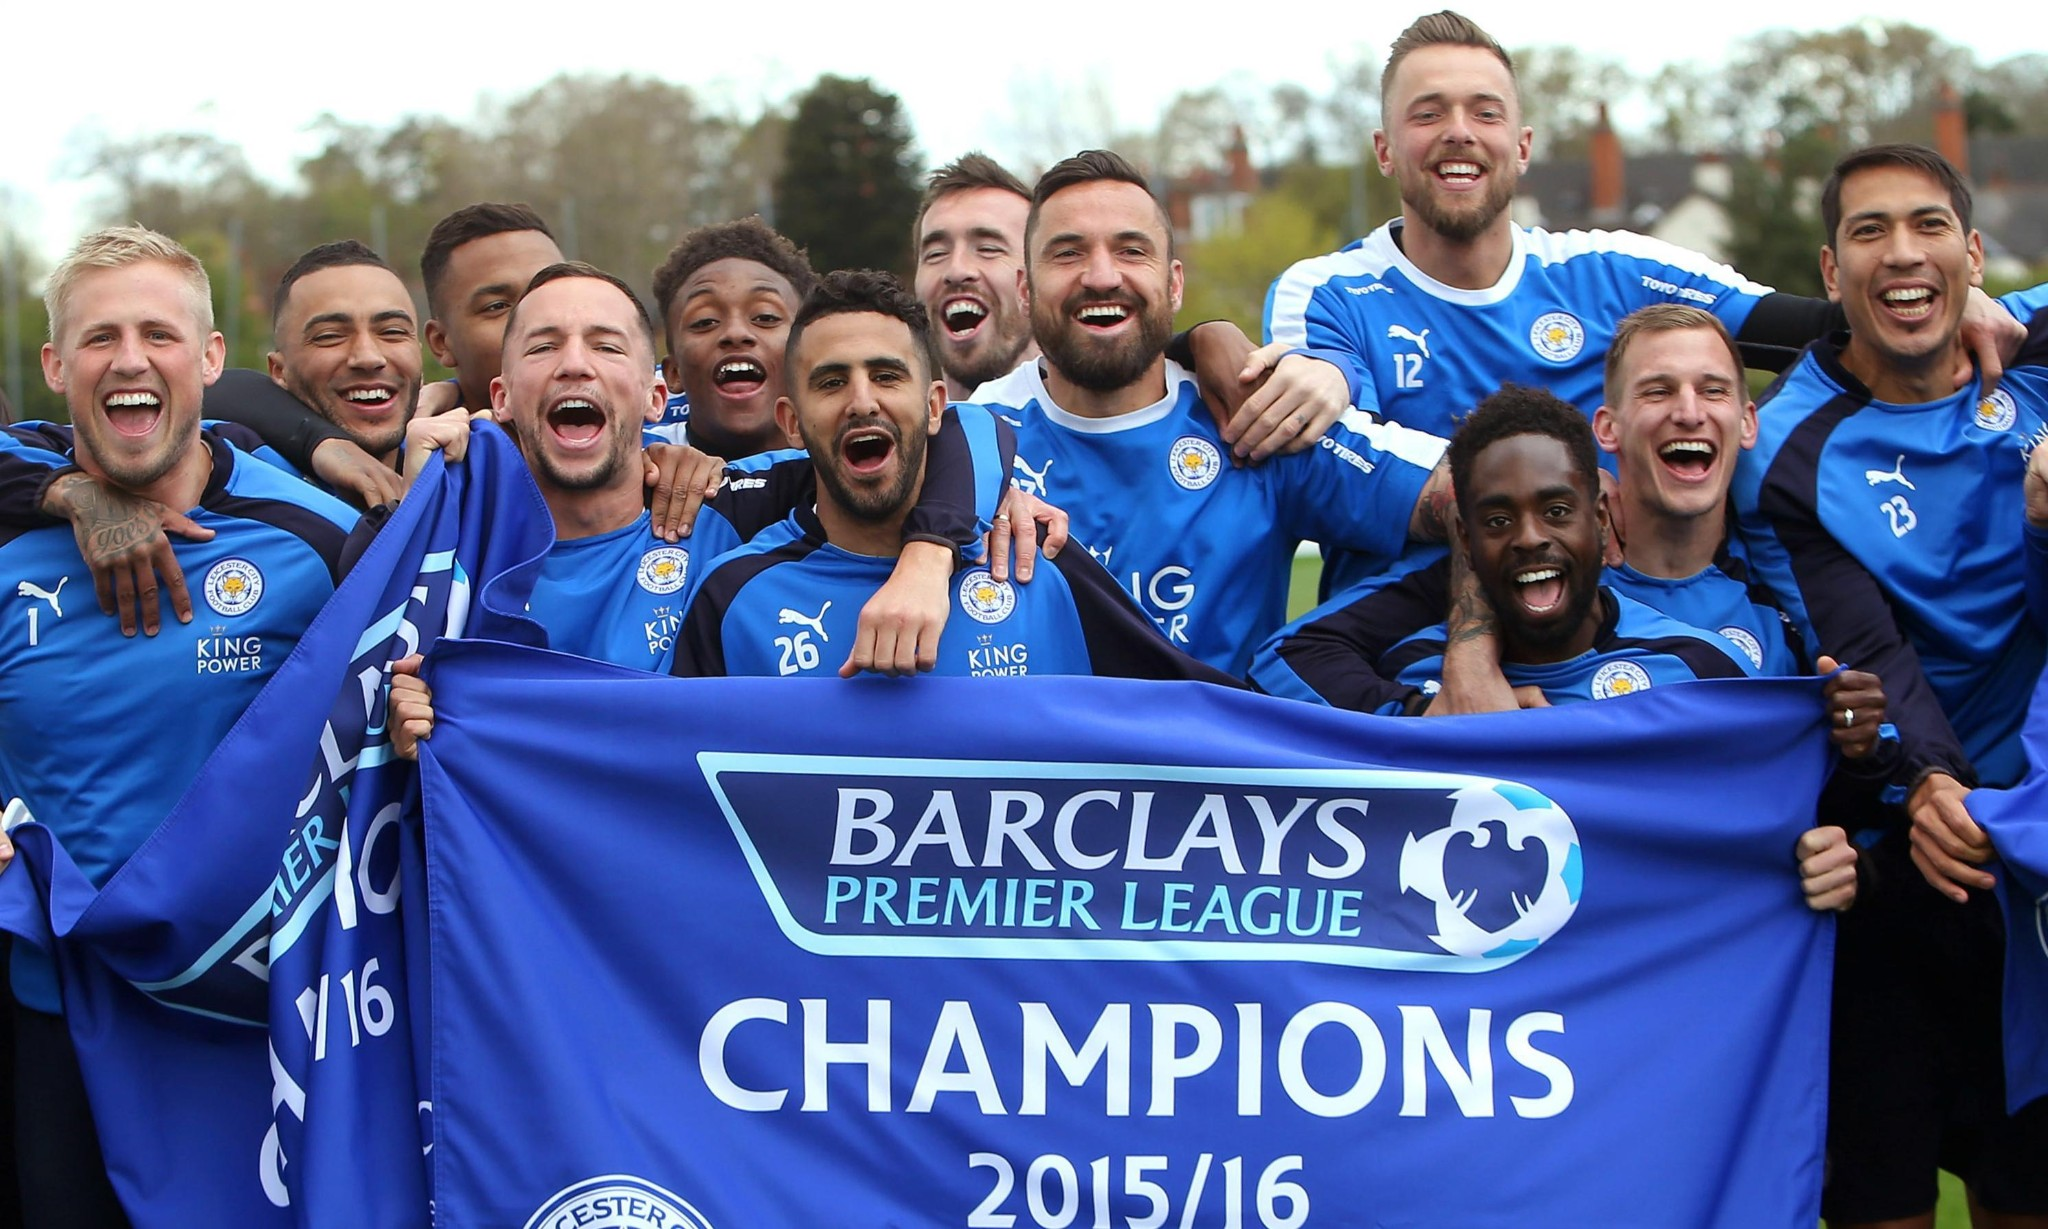 Leicester City's fairytale Premier League win - cover